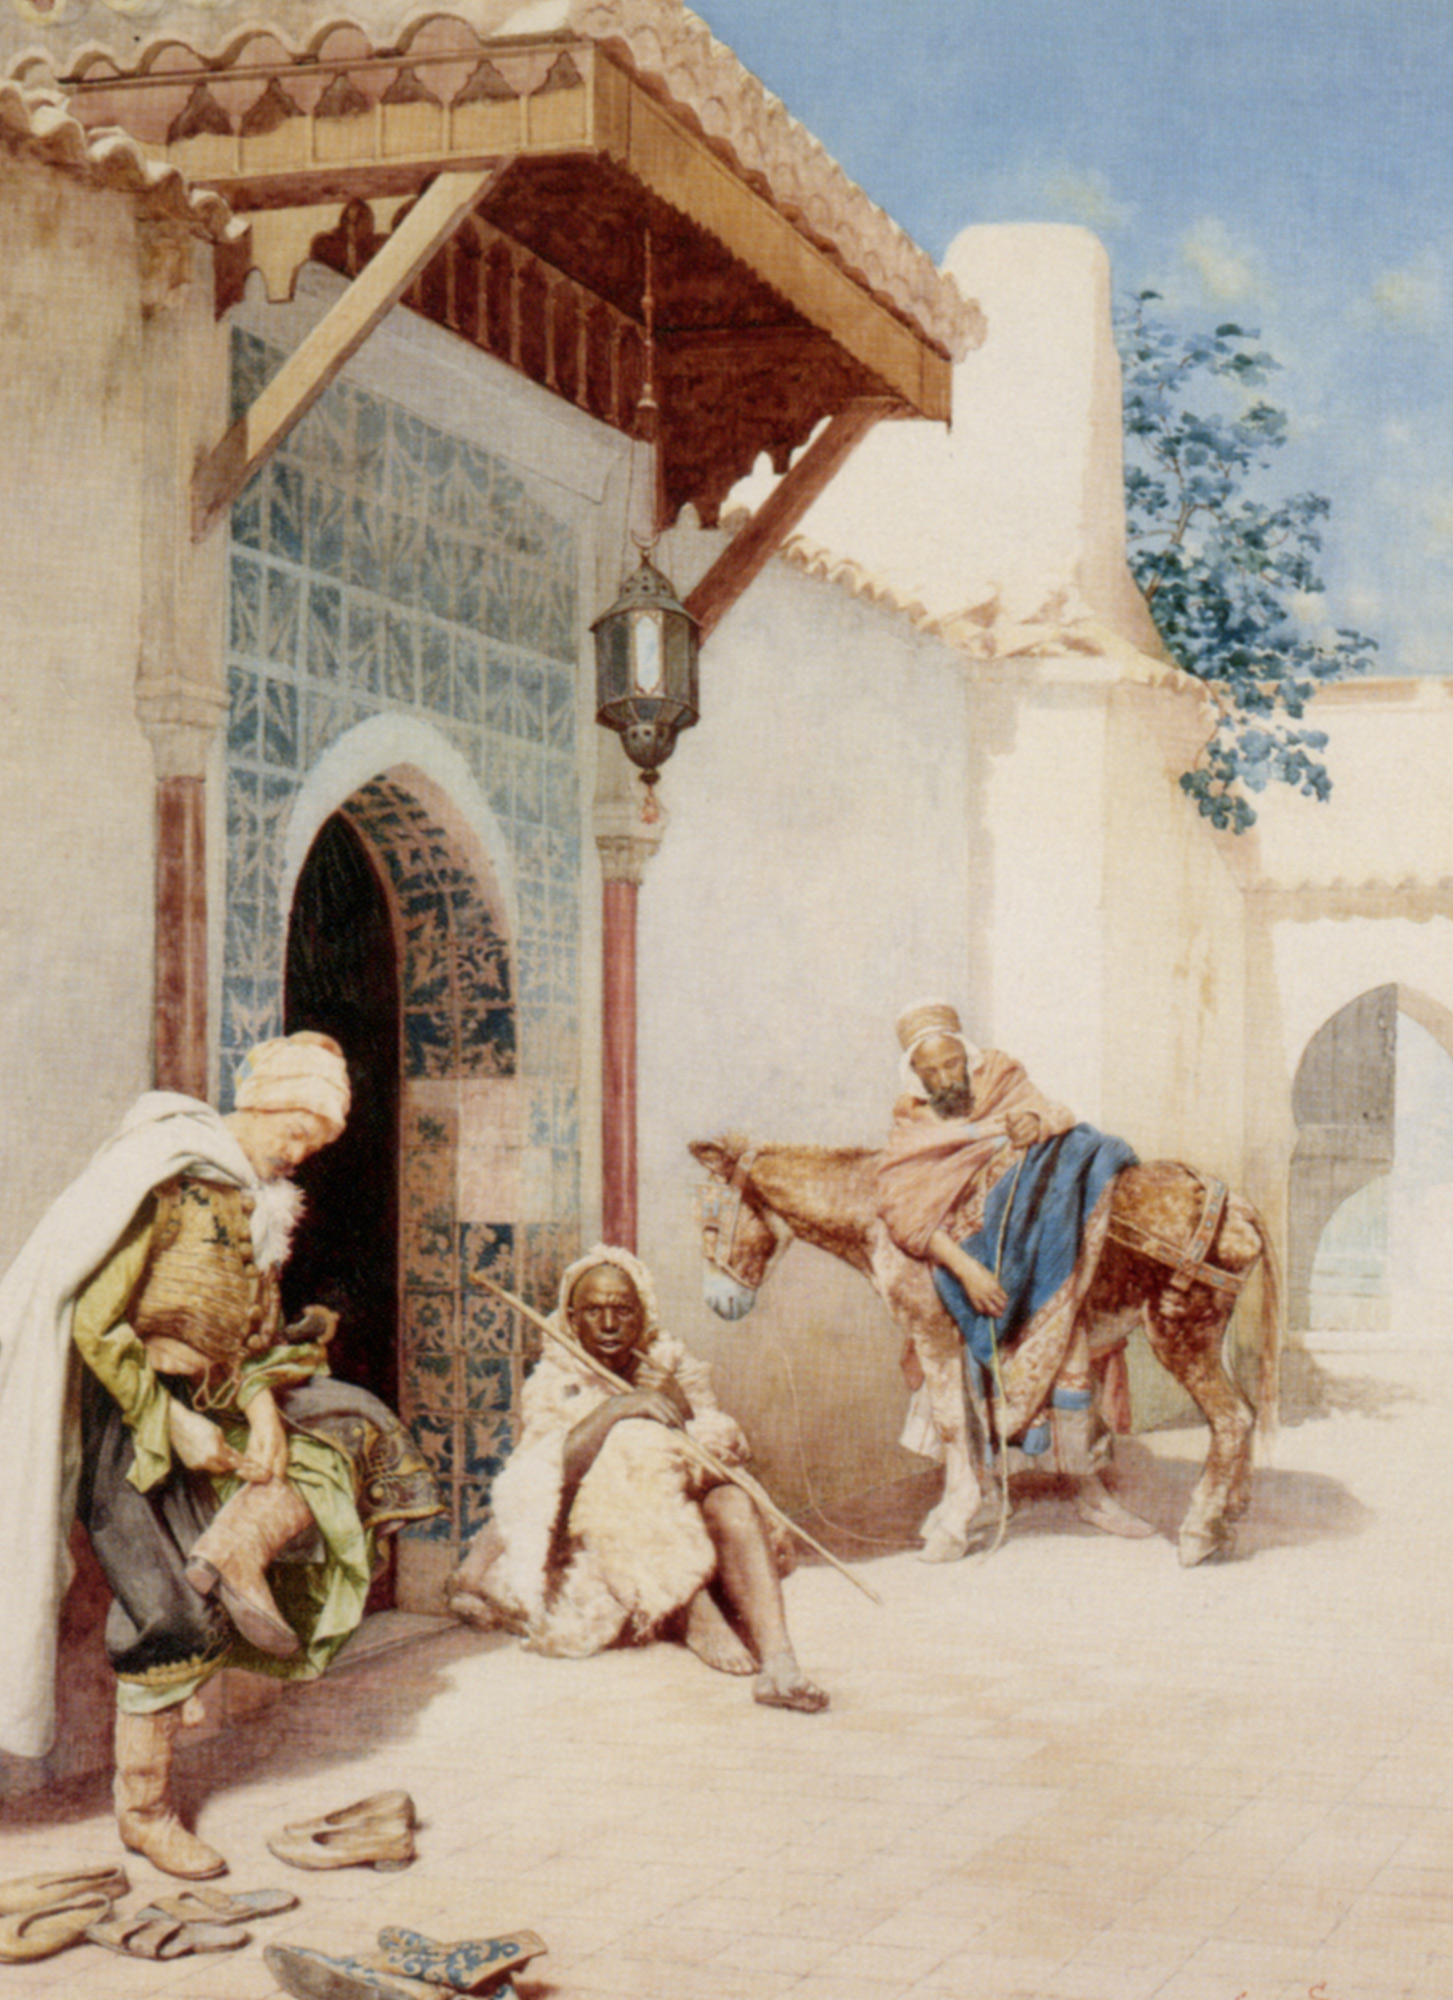 Making Ready for the Road :: Guiseppe Signorini - scenes of Oriental life (Orientalism) in art and painting ôîòî